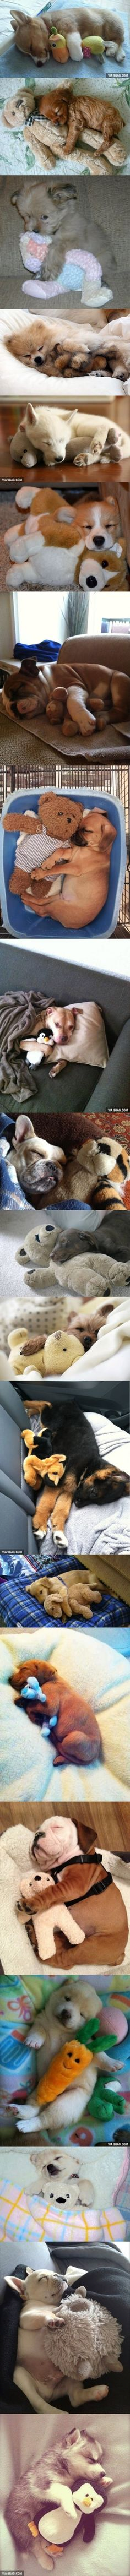 20 Puppies Cuddling With Their Stuffed Animals